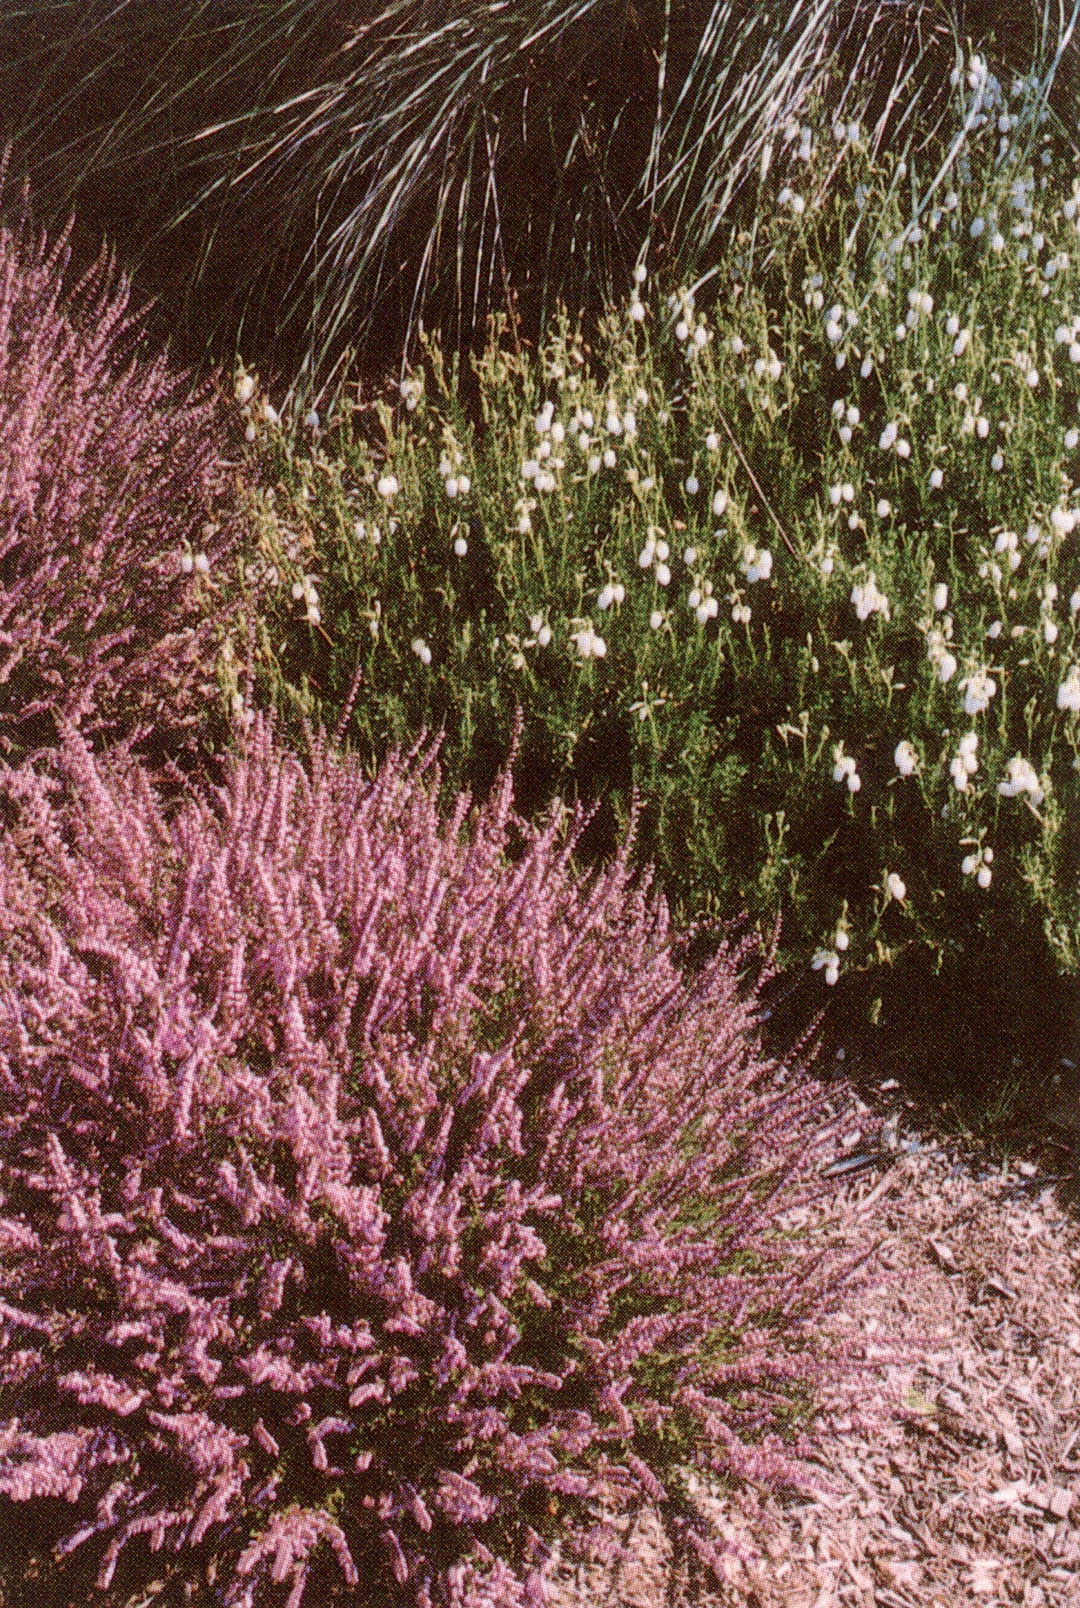 Pacific Horticulture Society | North Coast Gardening with Heather